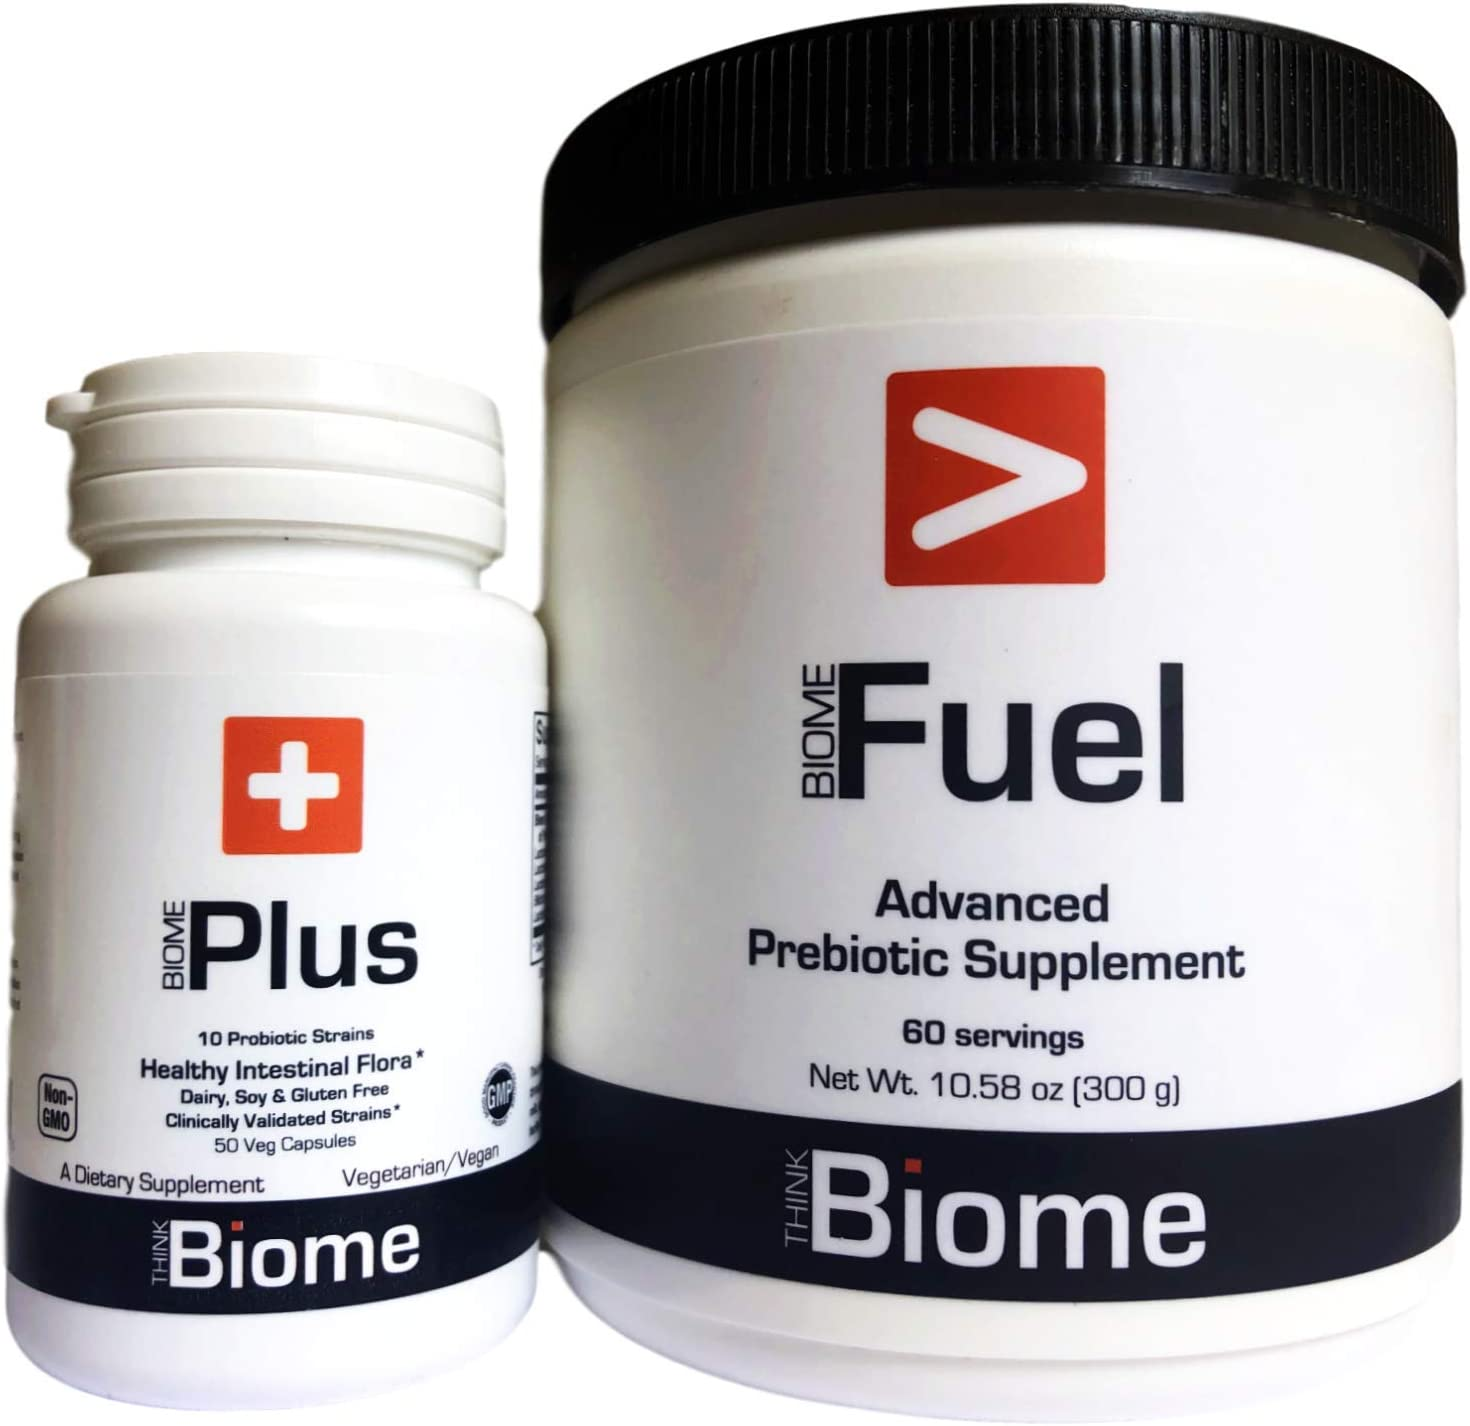 Synbiotic Fuel: Premium Prebiotic and Probiotic Combination for Microbiome Support